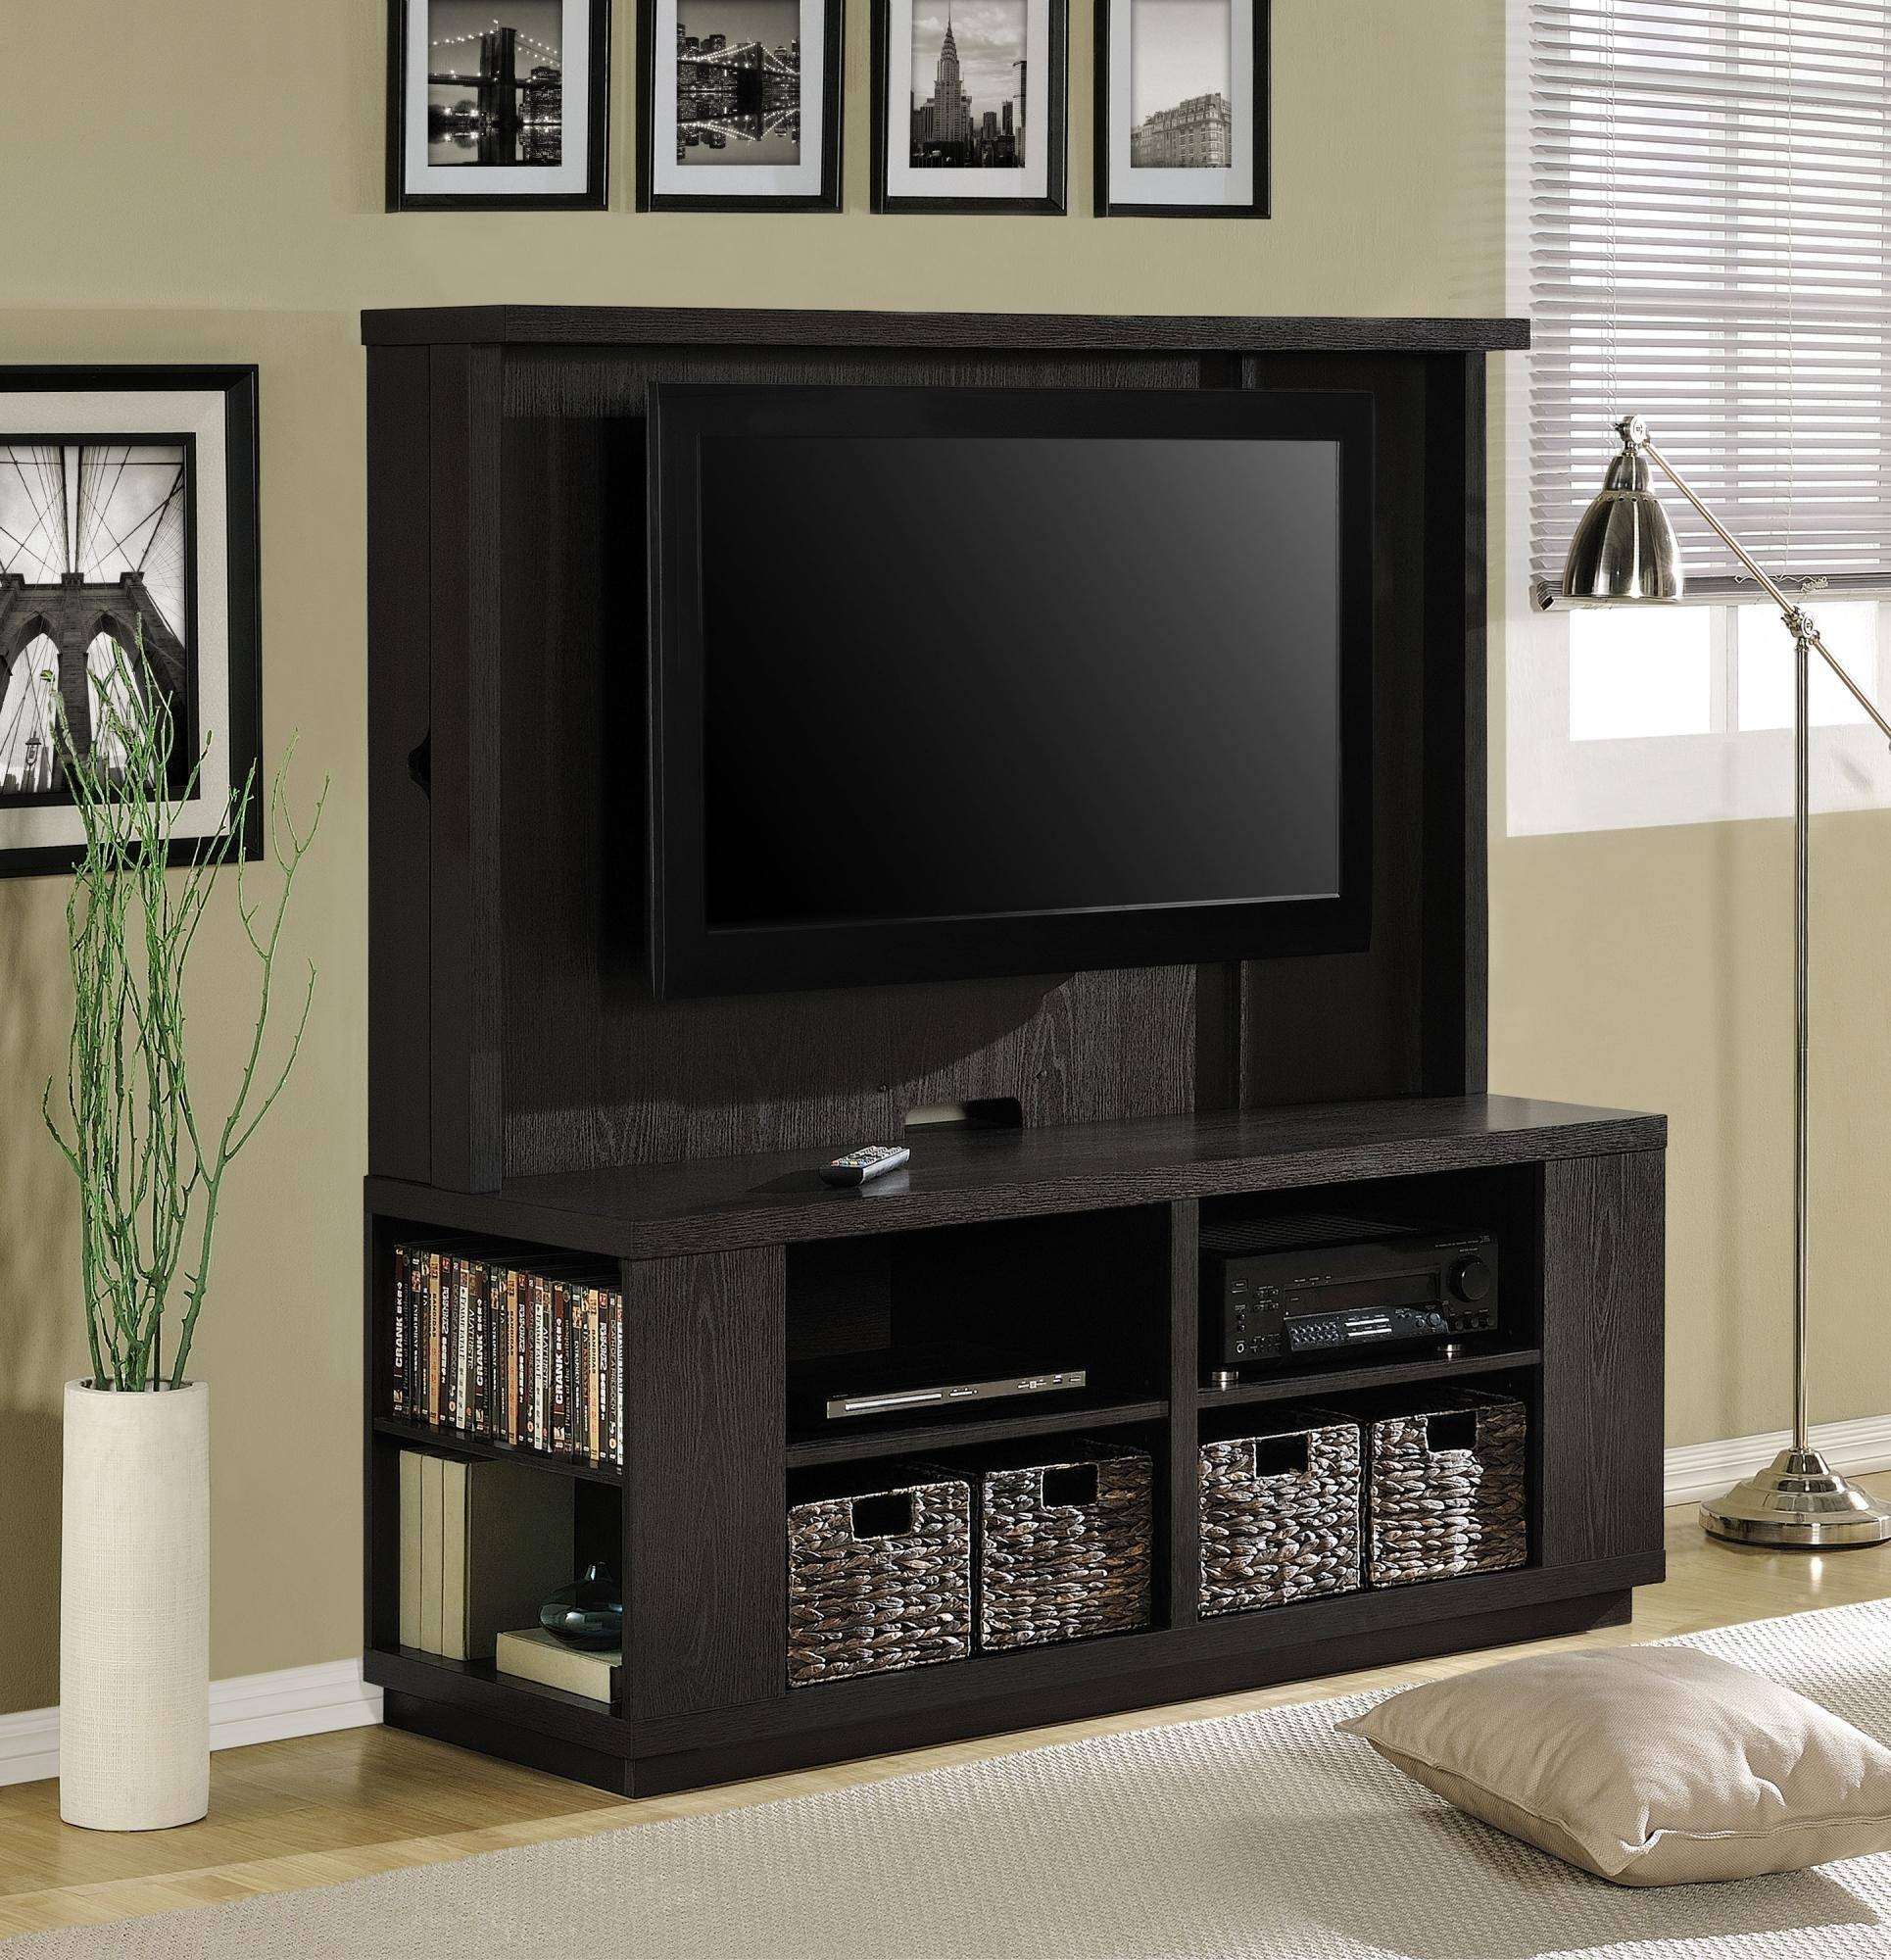 Small Black Wall Mounted Tv Stand With Storage Shelves Plus Woven Throughout Tv Stands With Baskets (View 2 of 15)